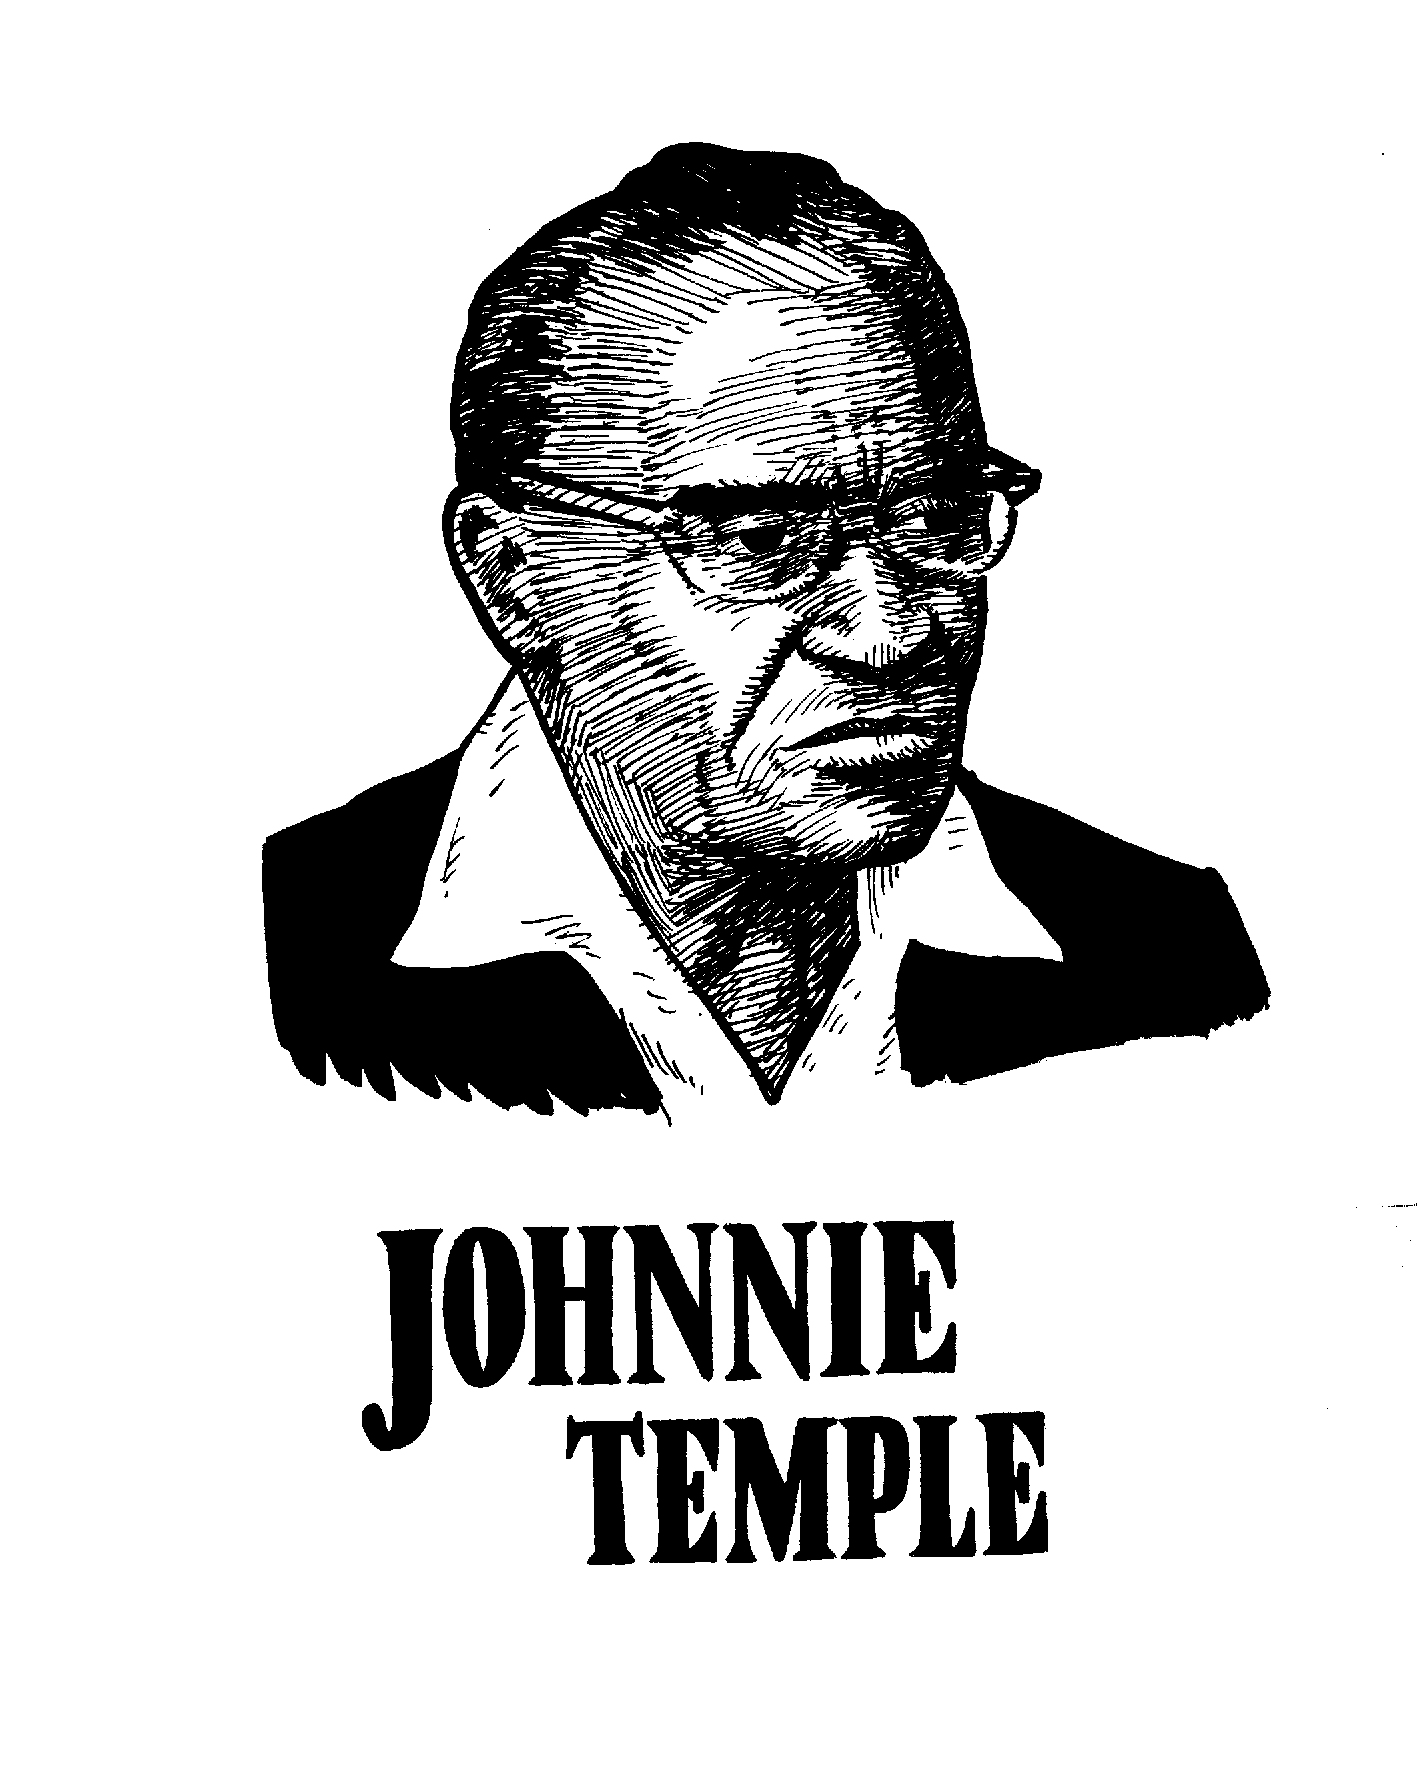 $250, Johnnie Temple and logo used in Secret History of Chicago Music